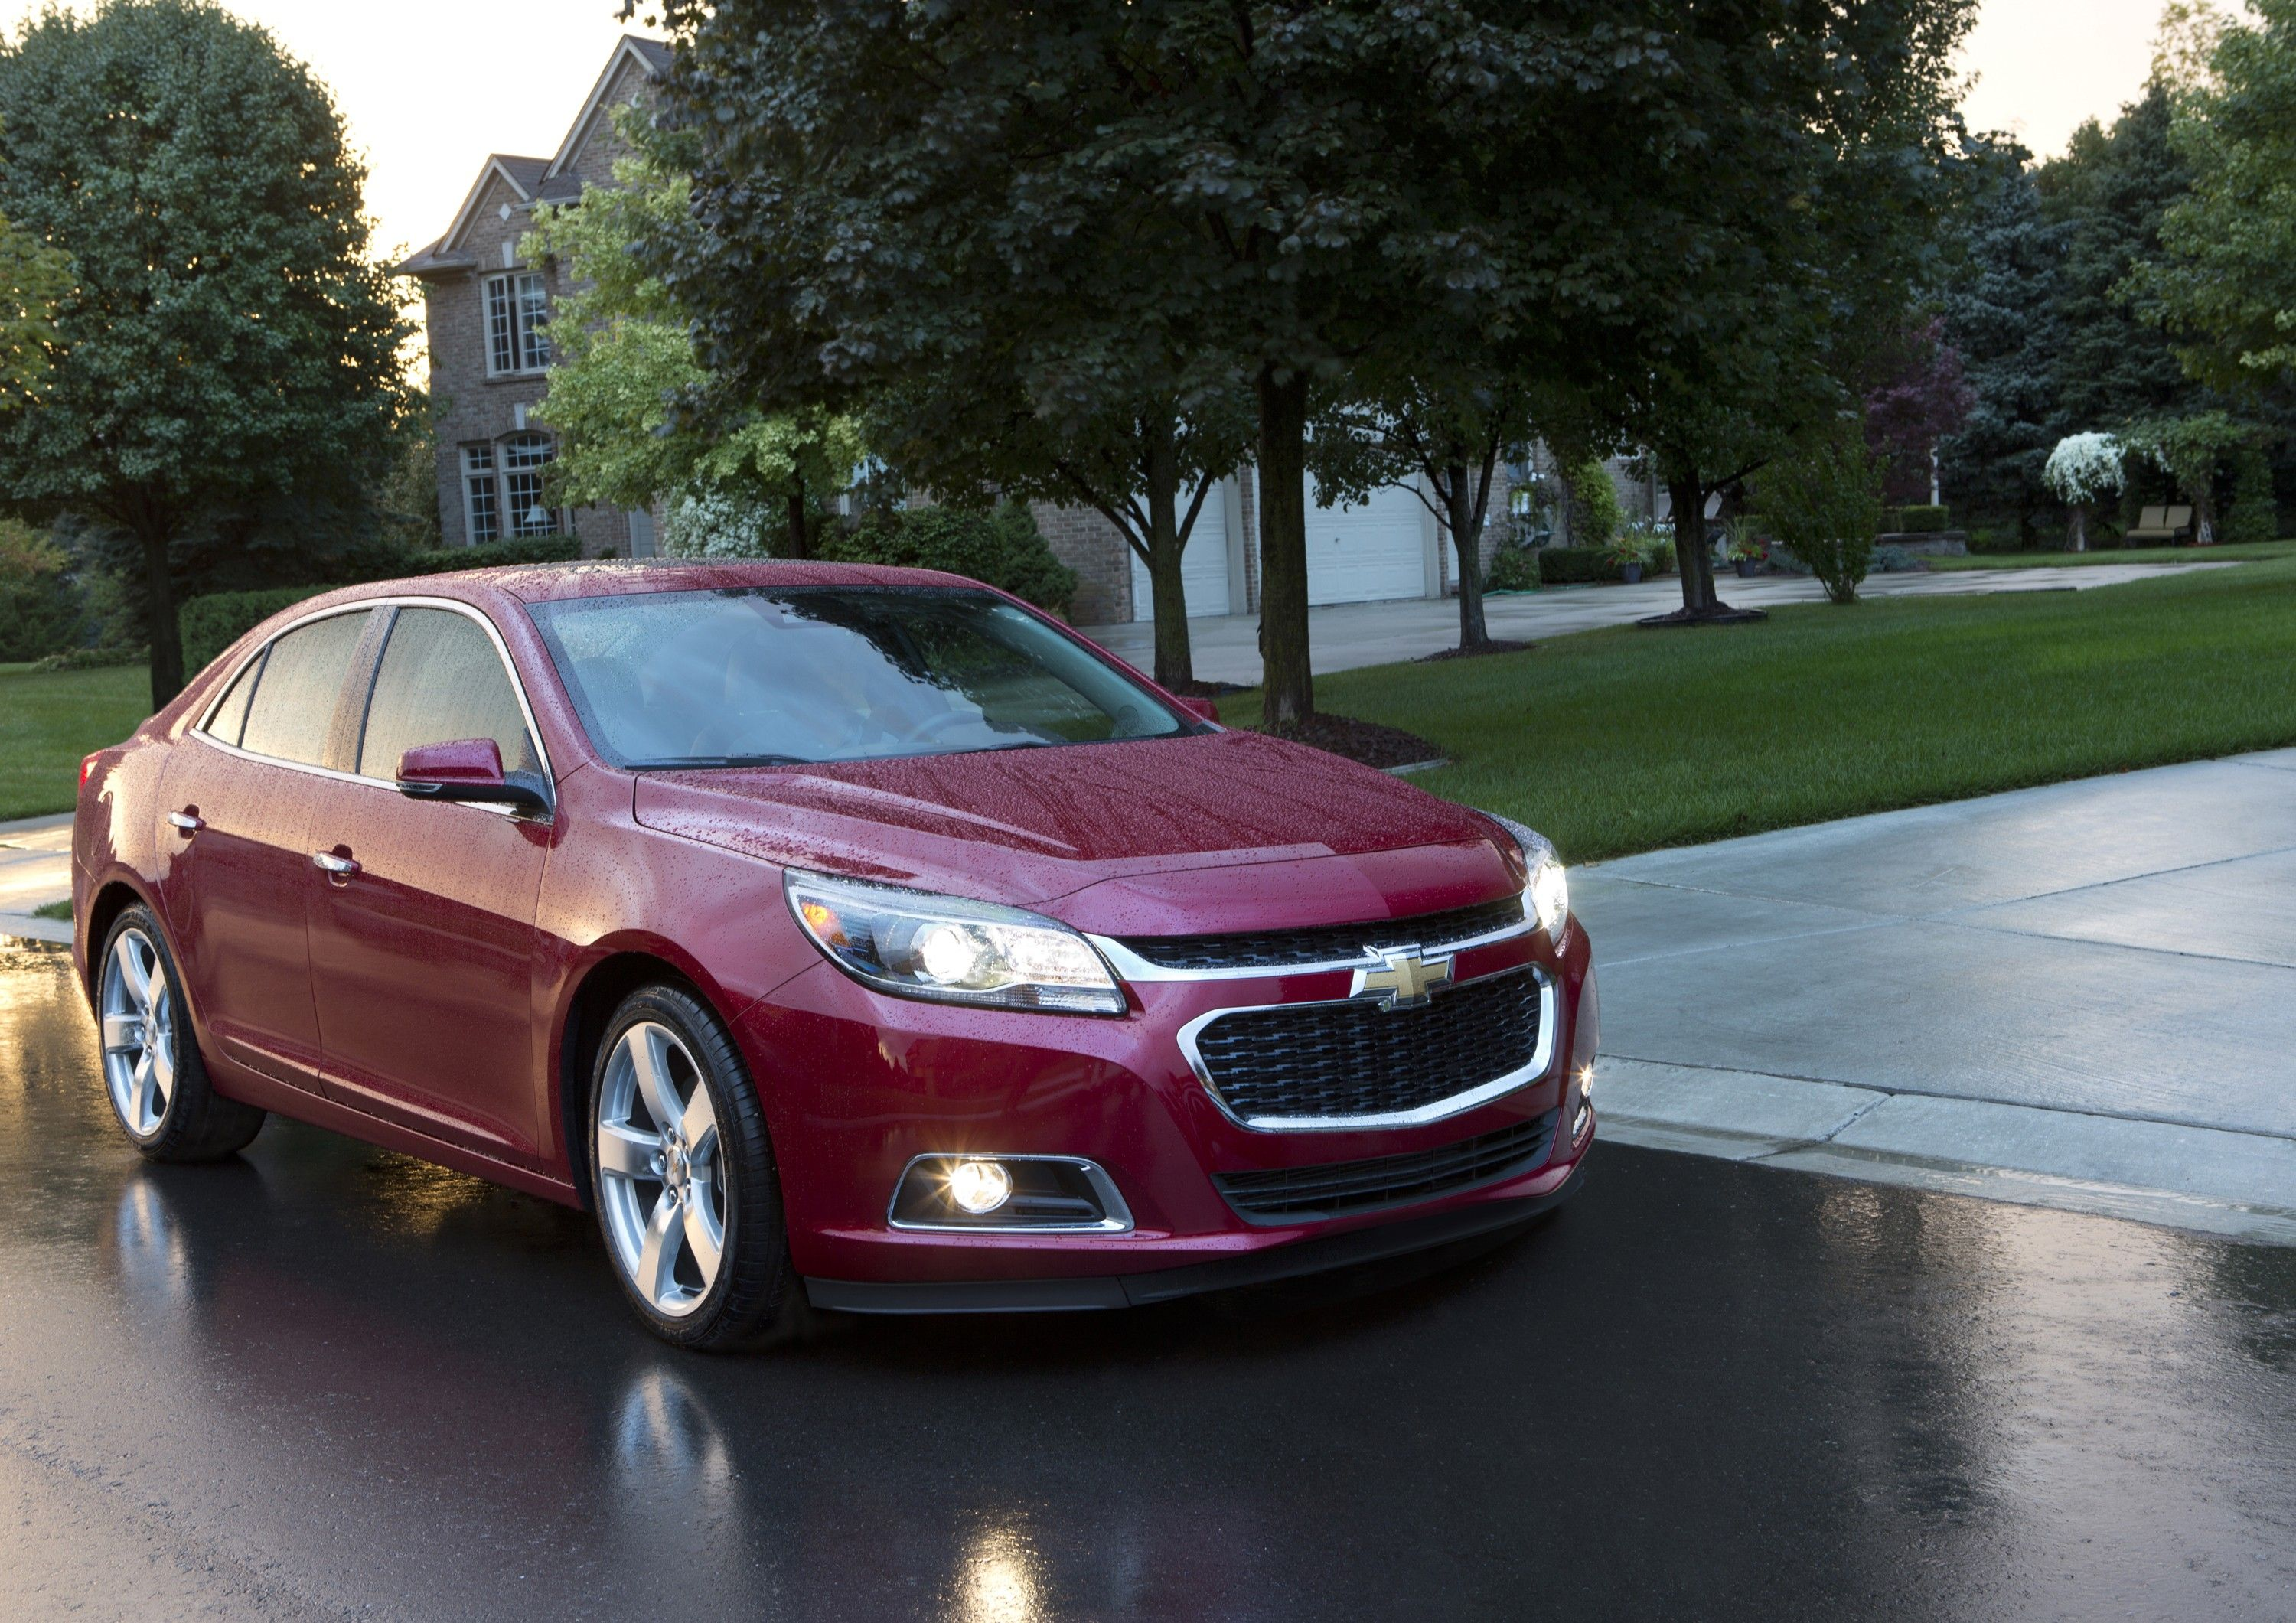 2018 Malibu New Cars Report Pinterest